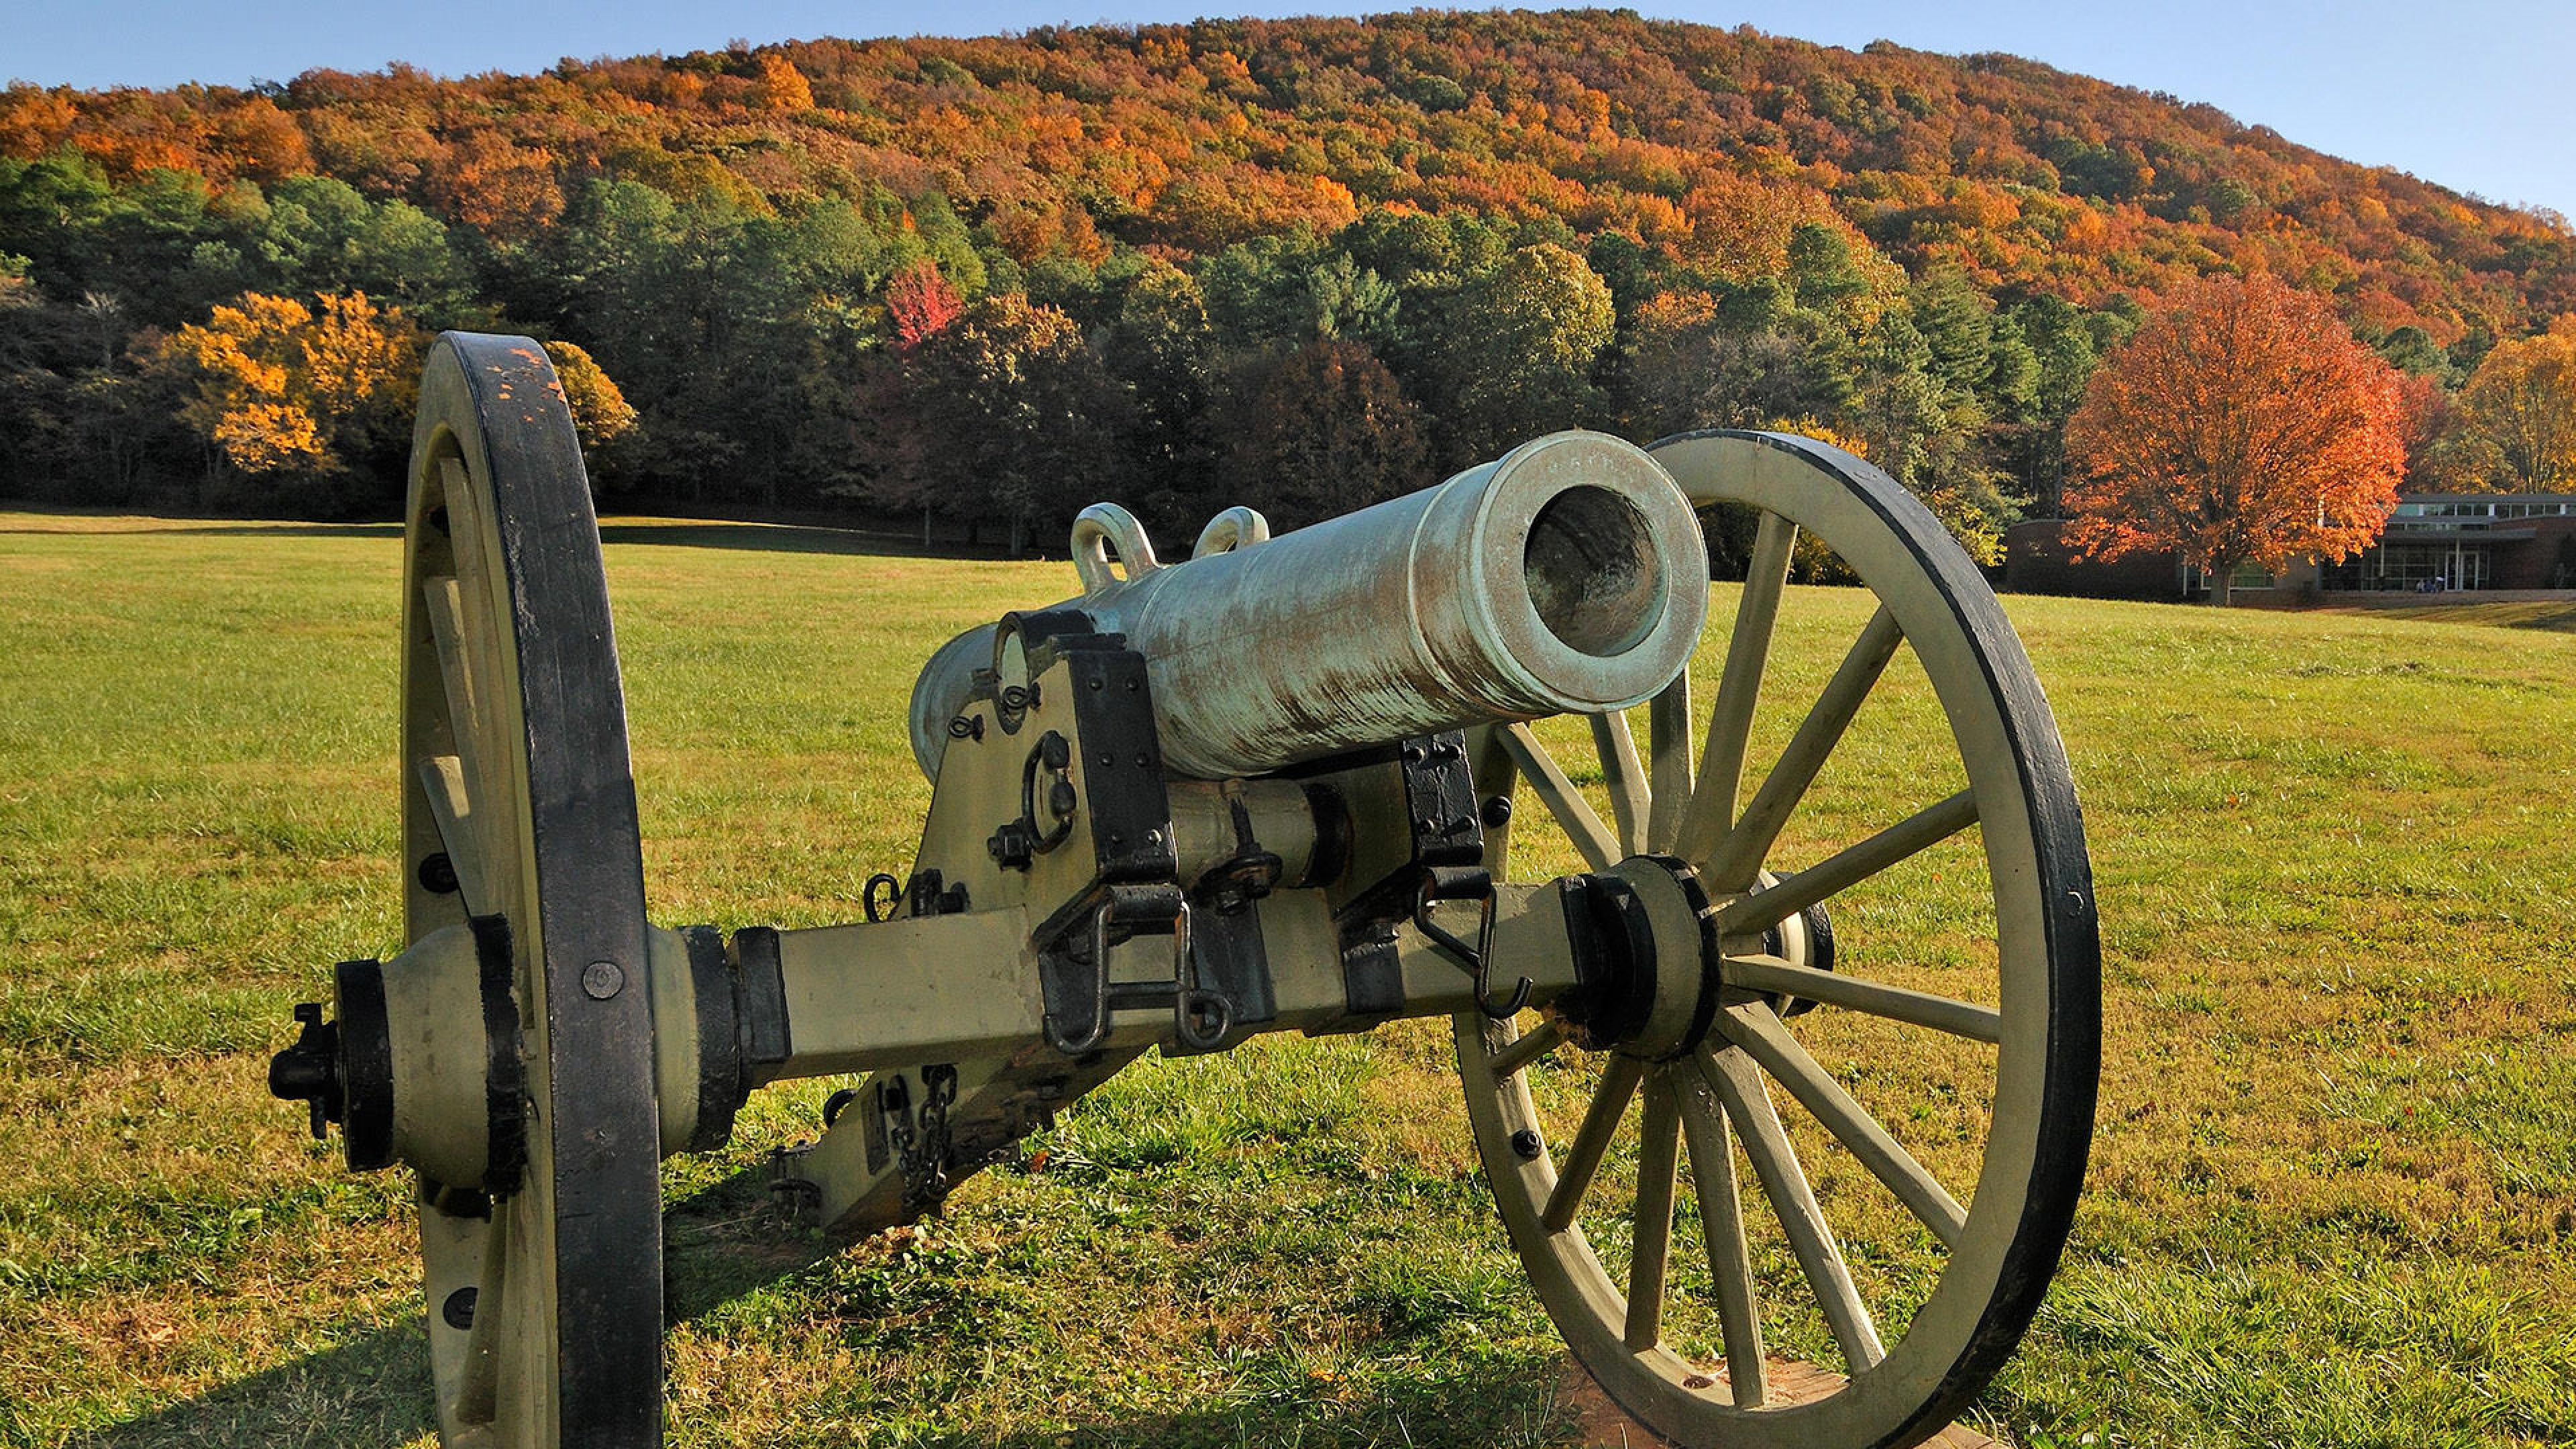 Cannon at Kennesaw Mountain